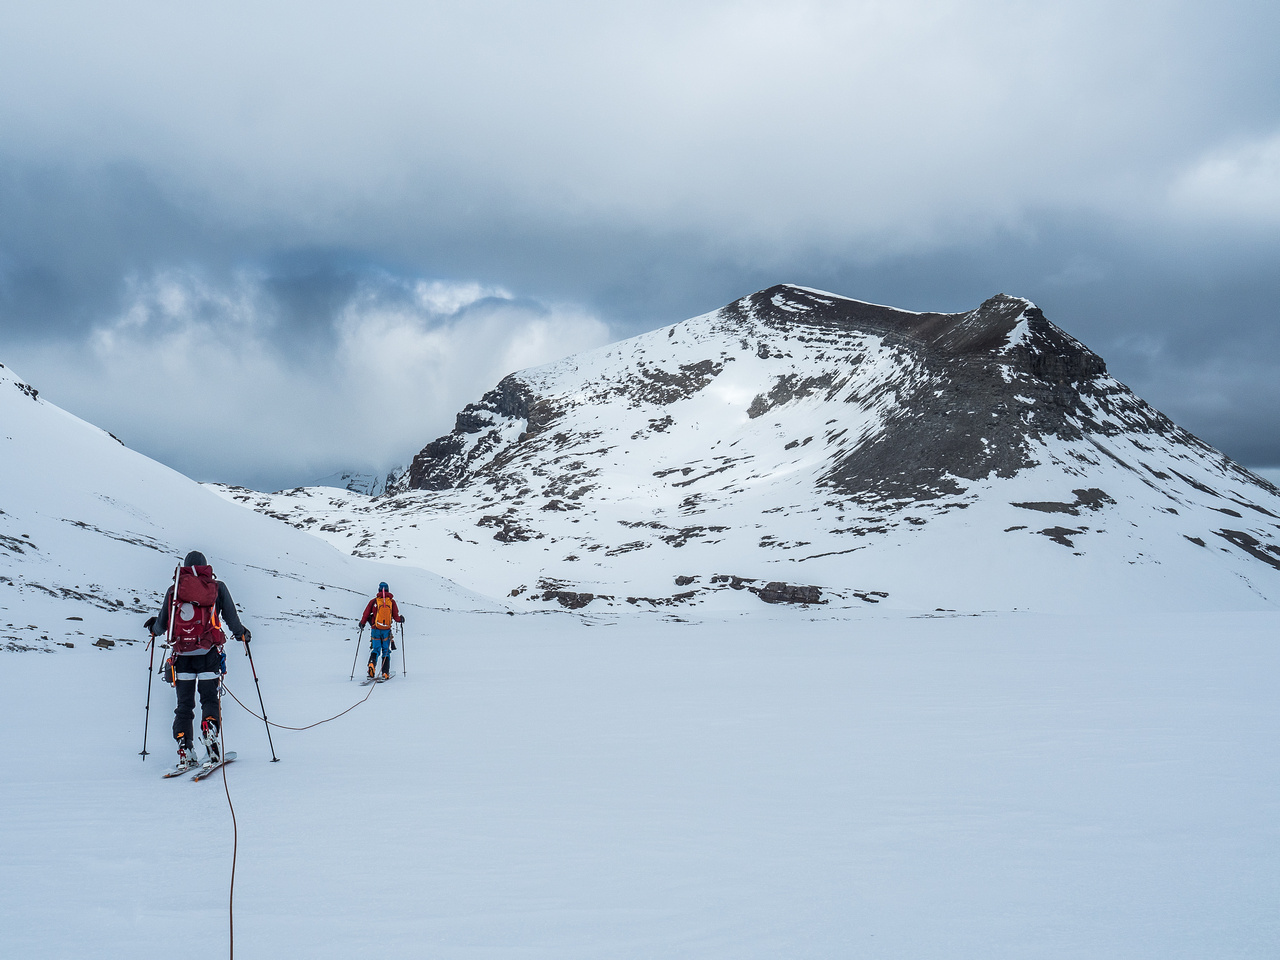 Finally skiing a direct line towards our objective and the Rearguard Meadows.